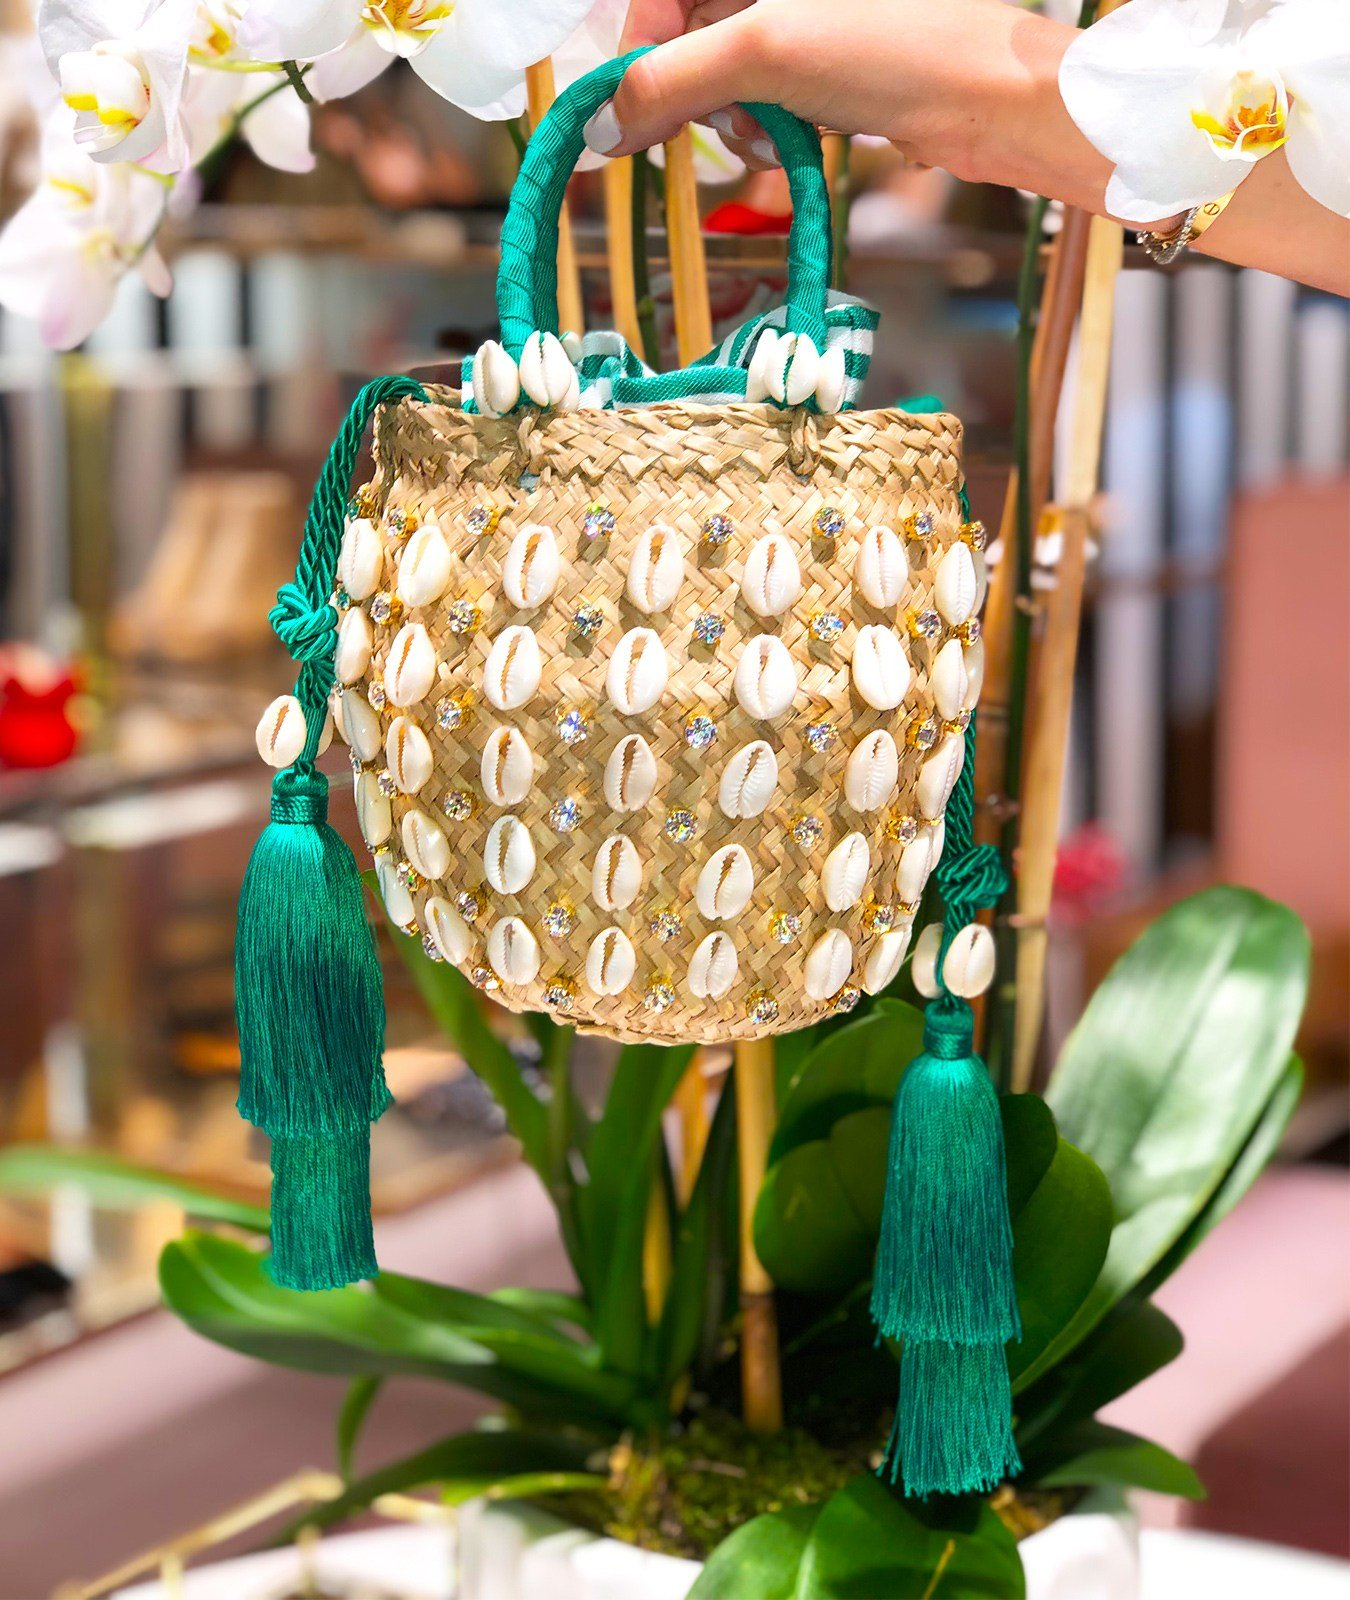 The Aquazzura Riviera bag is one of the styles created in collaboration with Le Ninè for the Escapes Capsule Collection. Hand-crafted from natural raffia, embellished with tropical cowrie shells, eye-catching crystals and swingy tassel